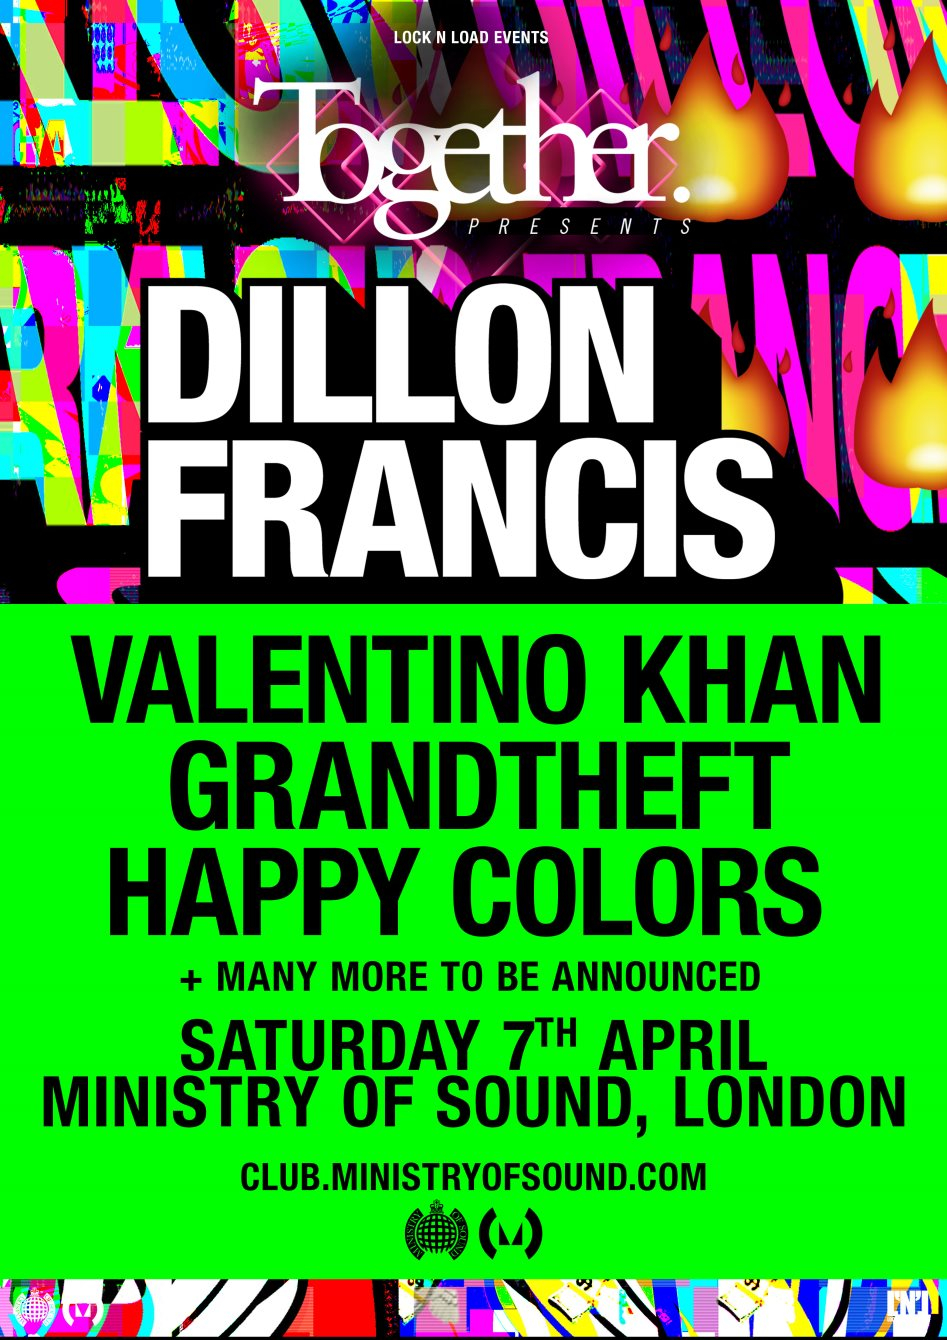 Together presents: Dillon Francis - Flyer front